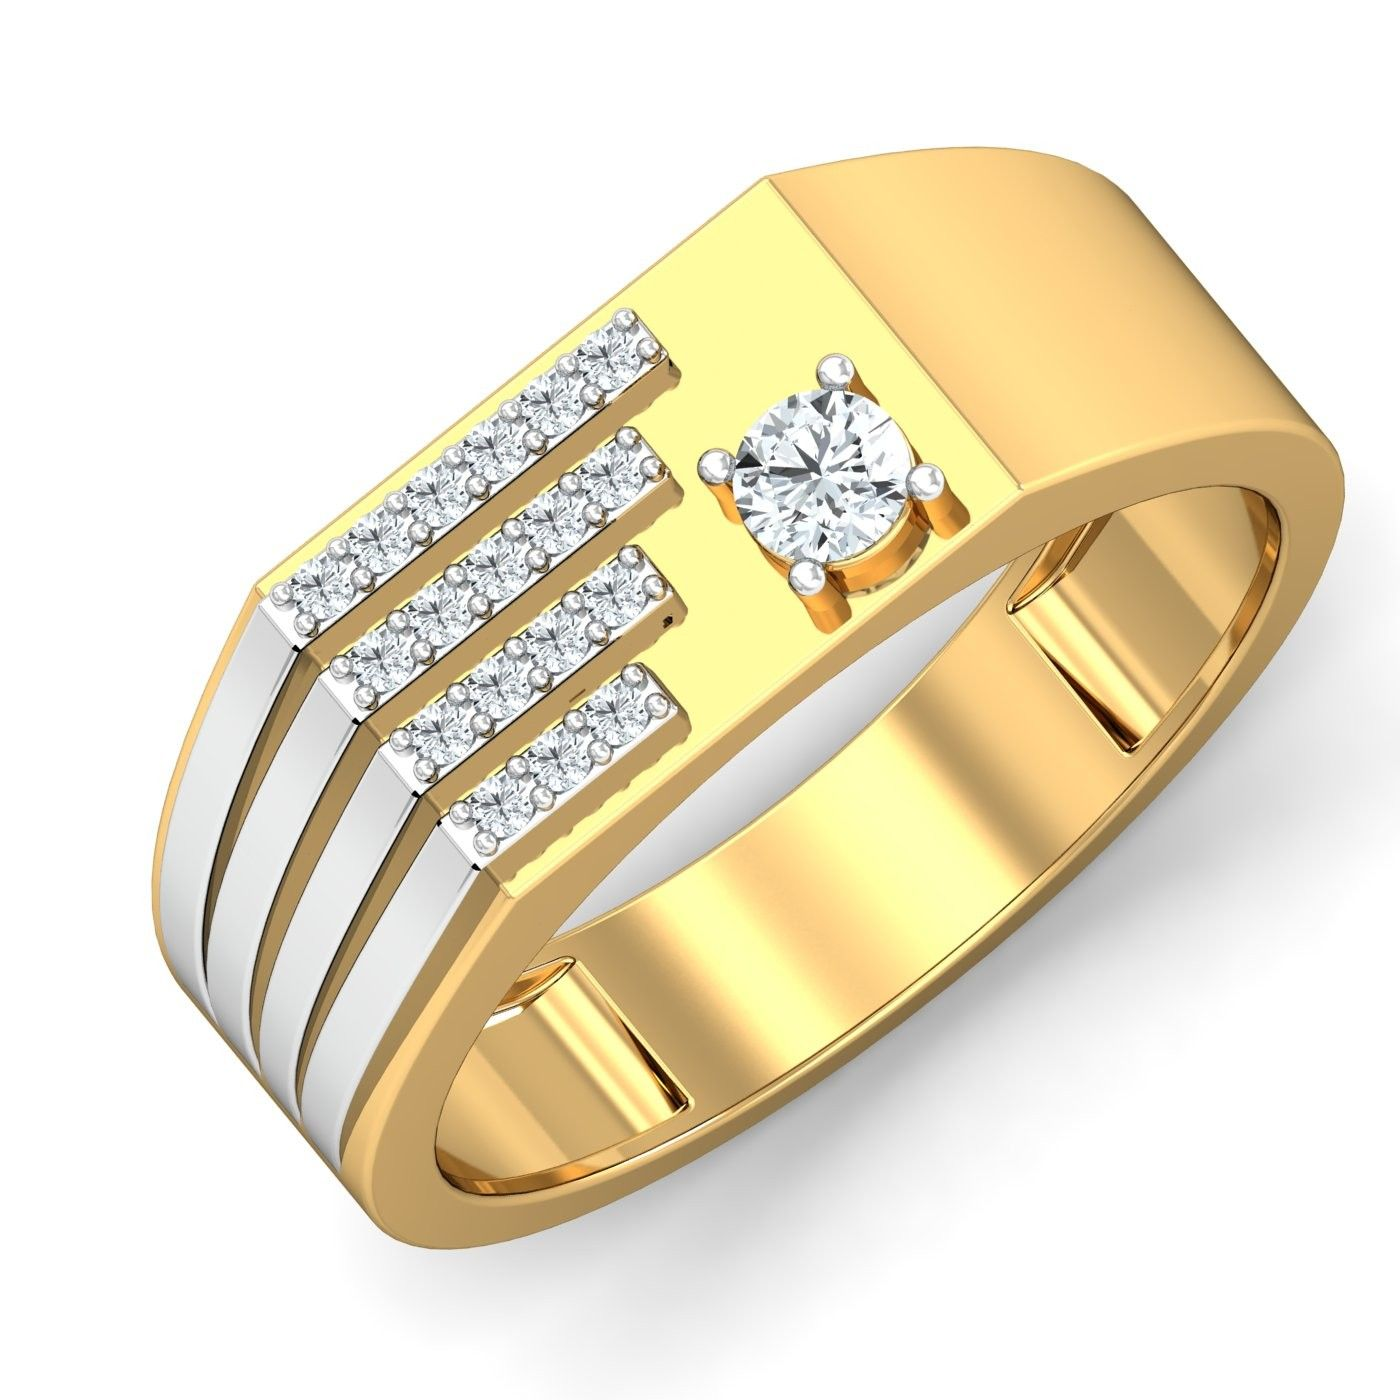 stone w miabella diamond ip gold in t engagement carat ring white rings three jewellery